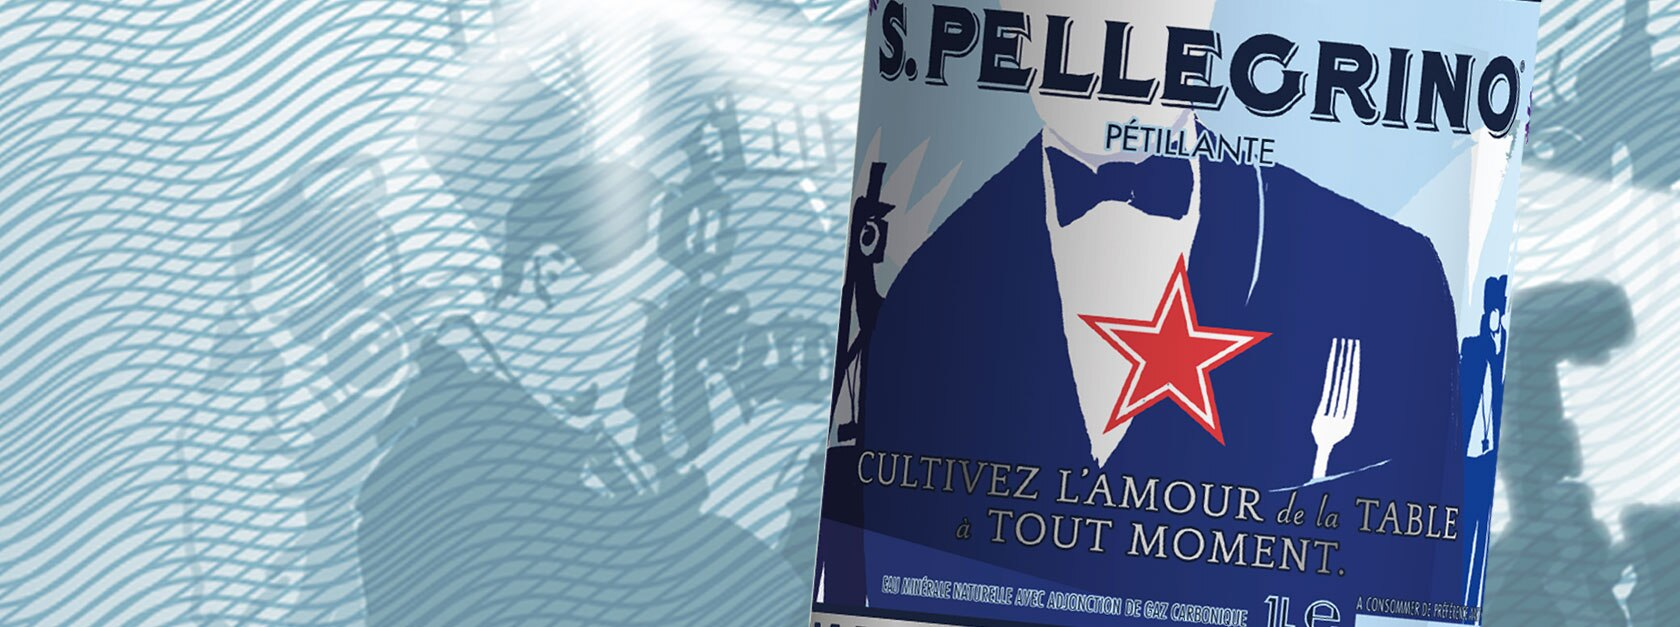 S.Pellegrino Cannes limited edition 2014